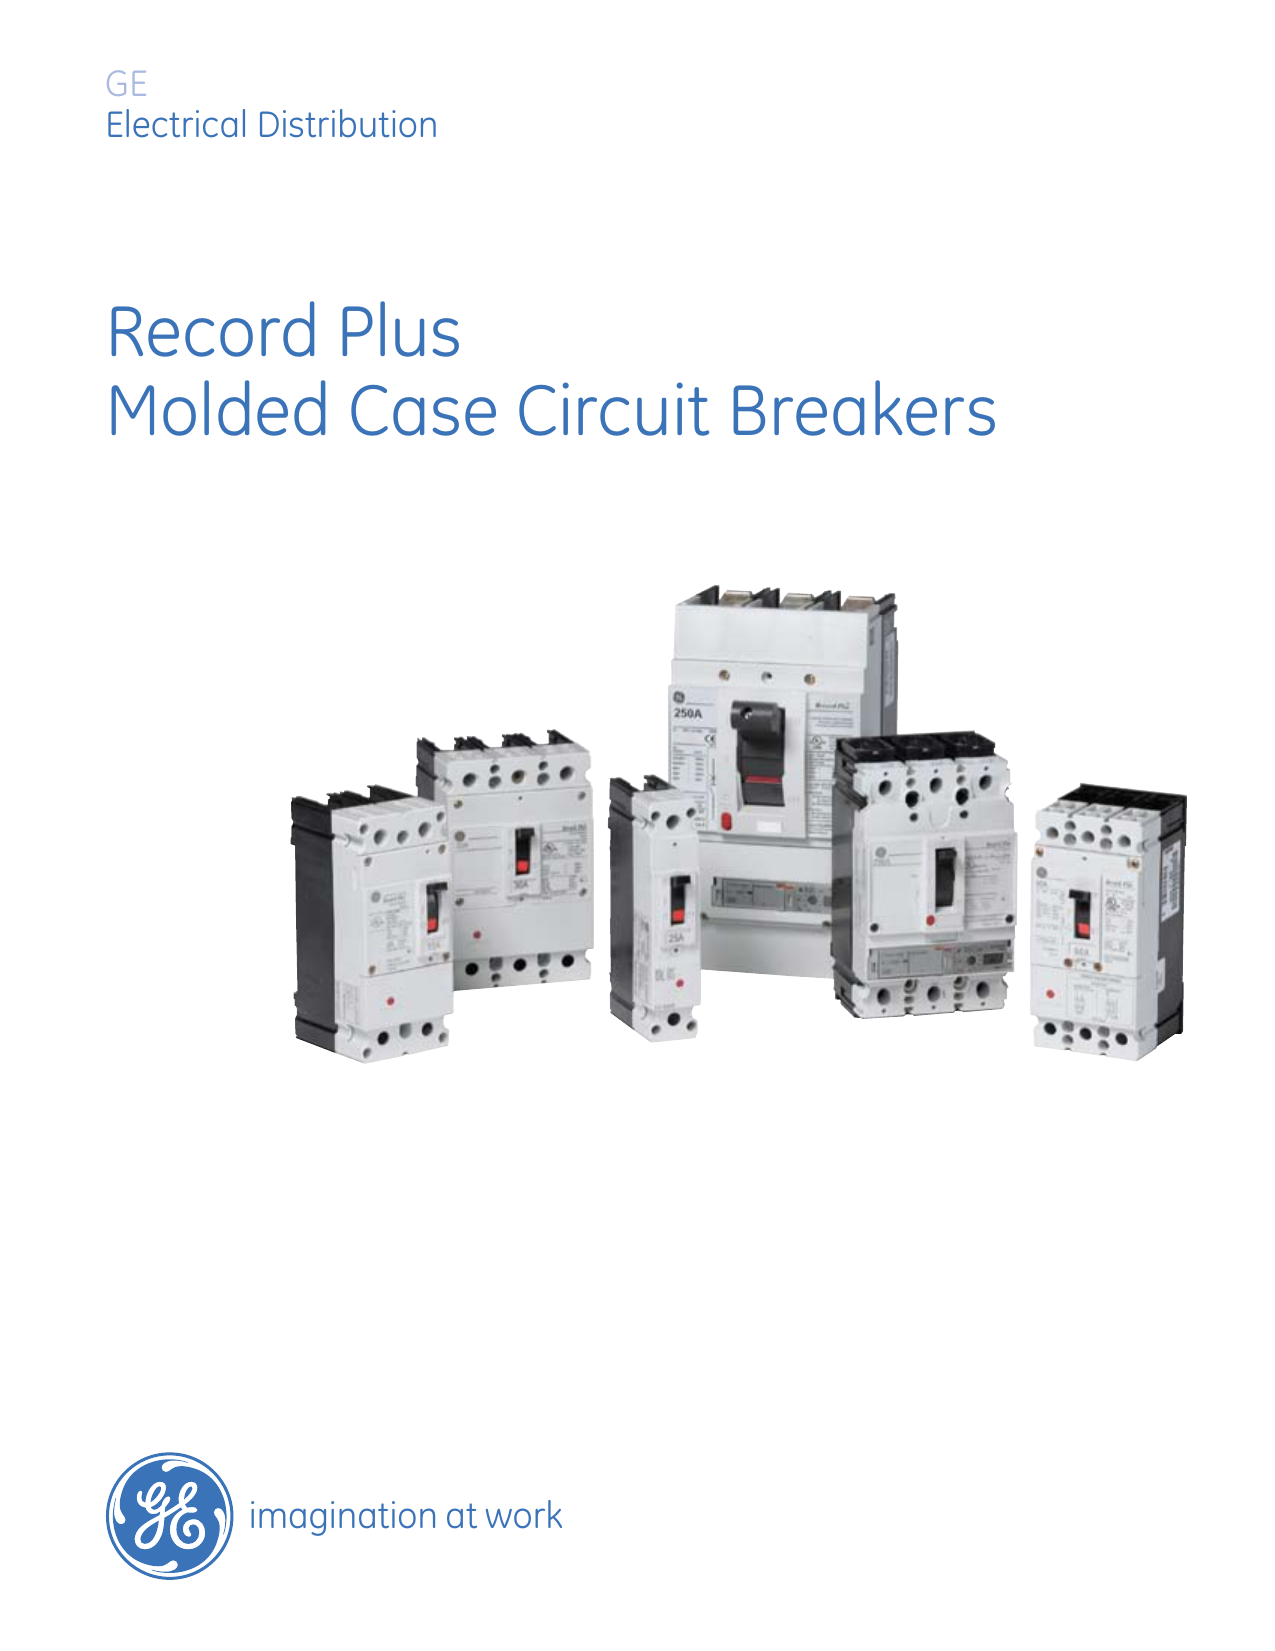 Record Plus Molded Case Circuit Breakers How Does Breaker Work 018076783 1 0768e371298b3c384670ef436f734556